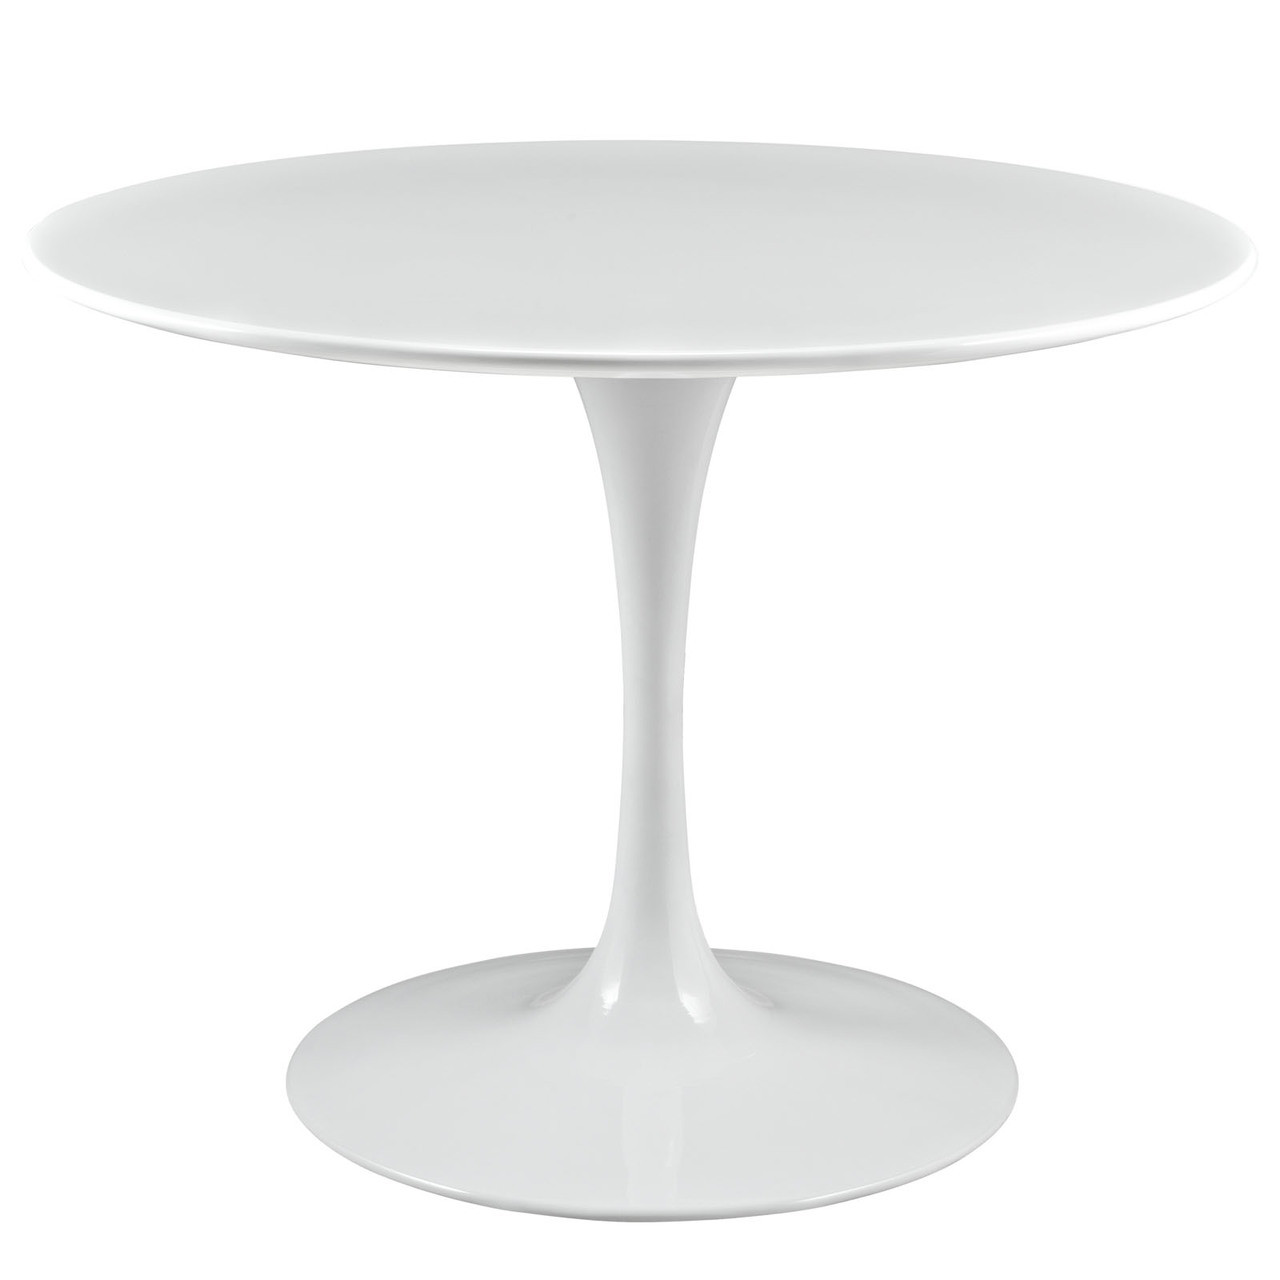 "Lippa 40"" Round Wood Top Dining Table"